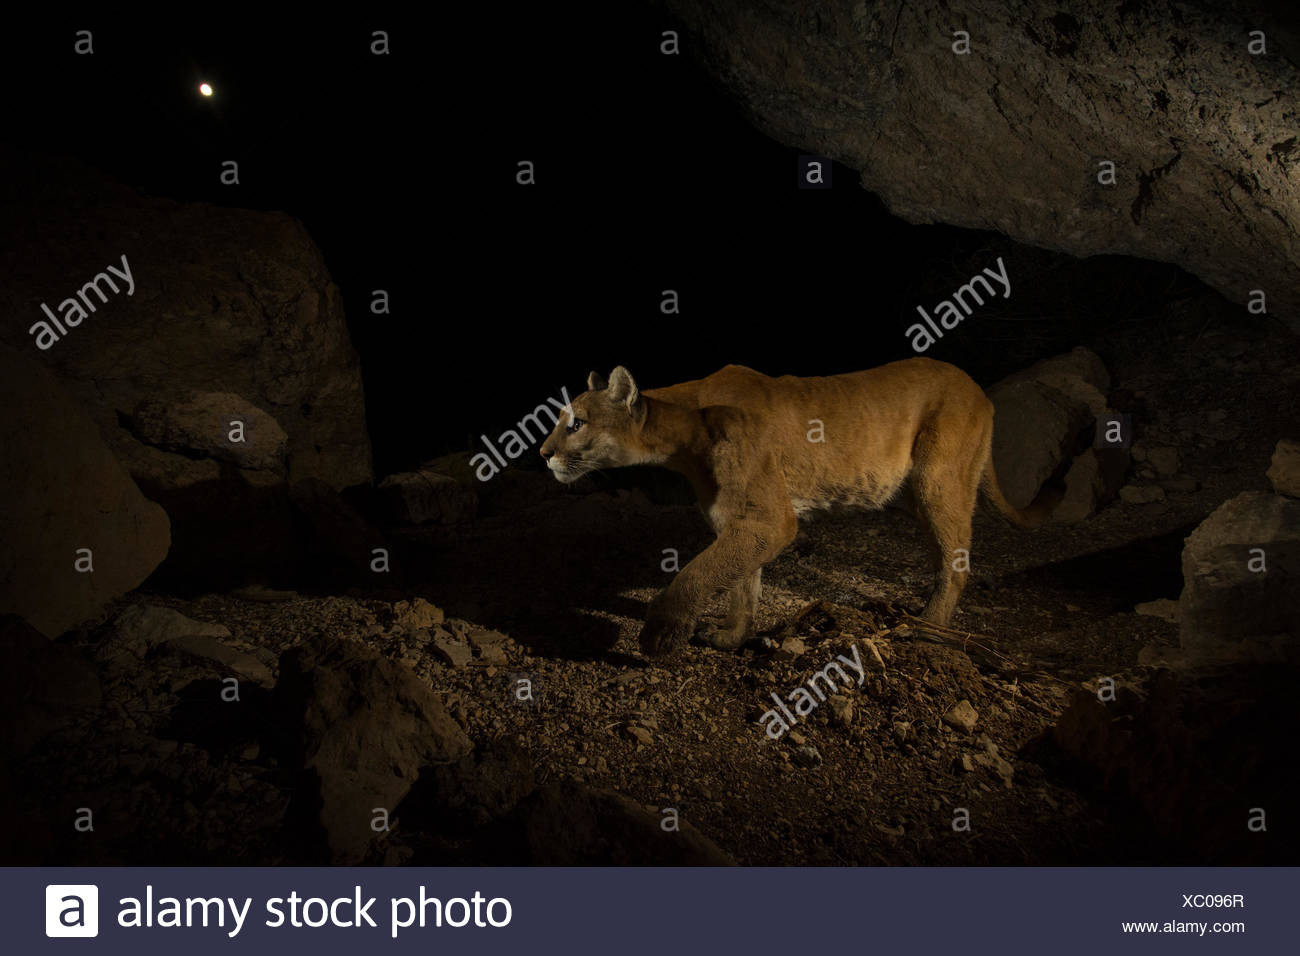 A remote camera captures a mountain lion in Wyoming's Greater Yellowstone Ecosystem. - Stock Image